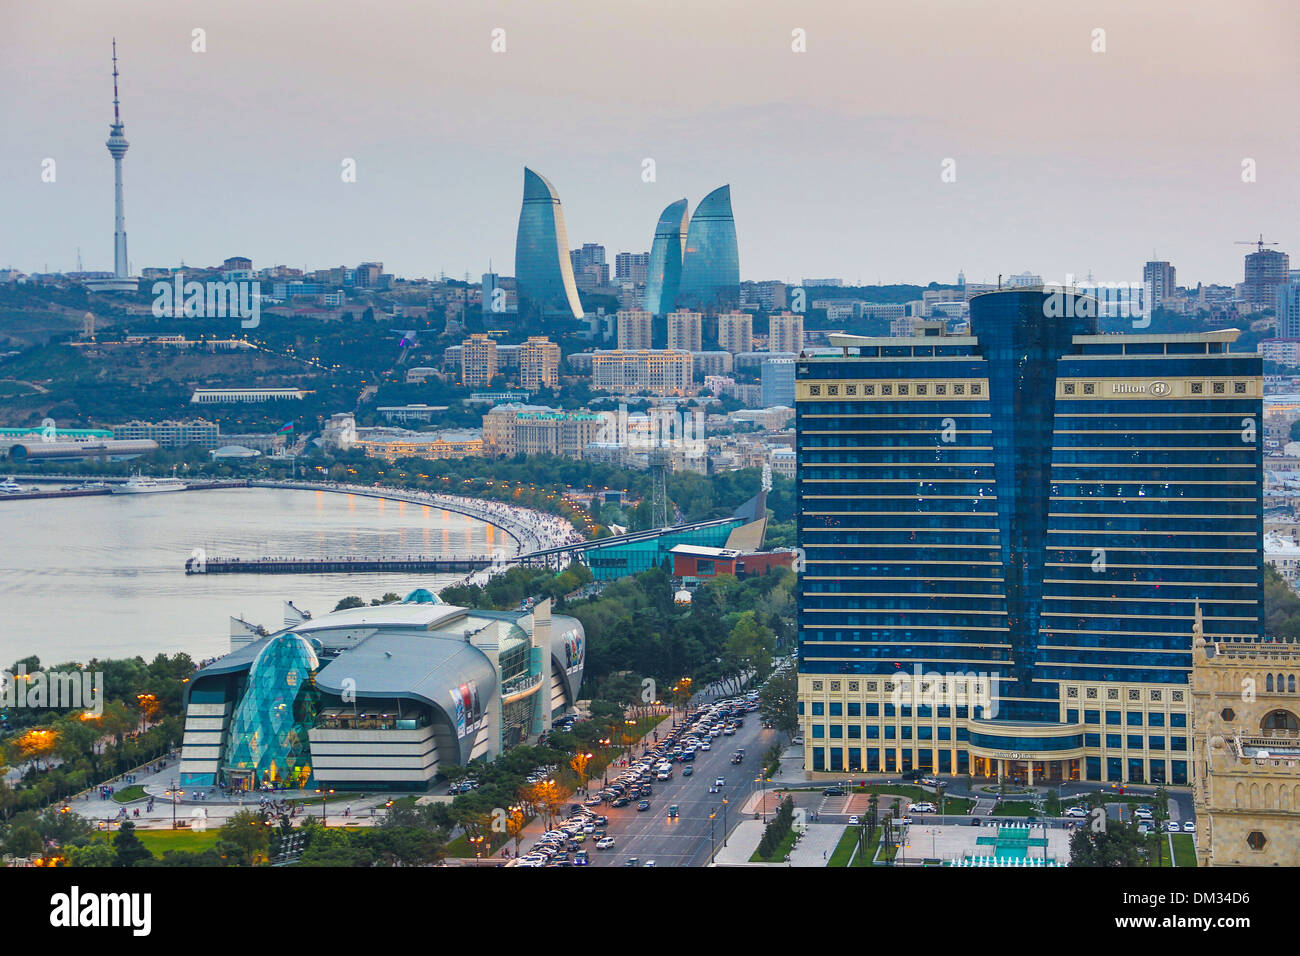 Azerbaijan Caucasus Eurasia Baku Flame Tele architecture avenue bay cars city downtown Hilton skyline sunset touristic Stock Photo